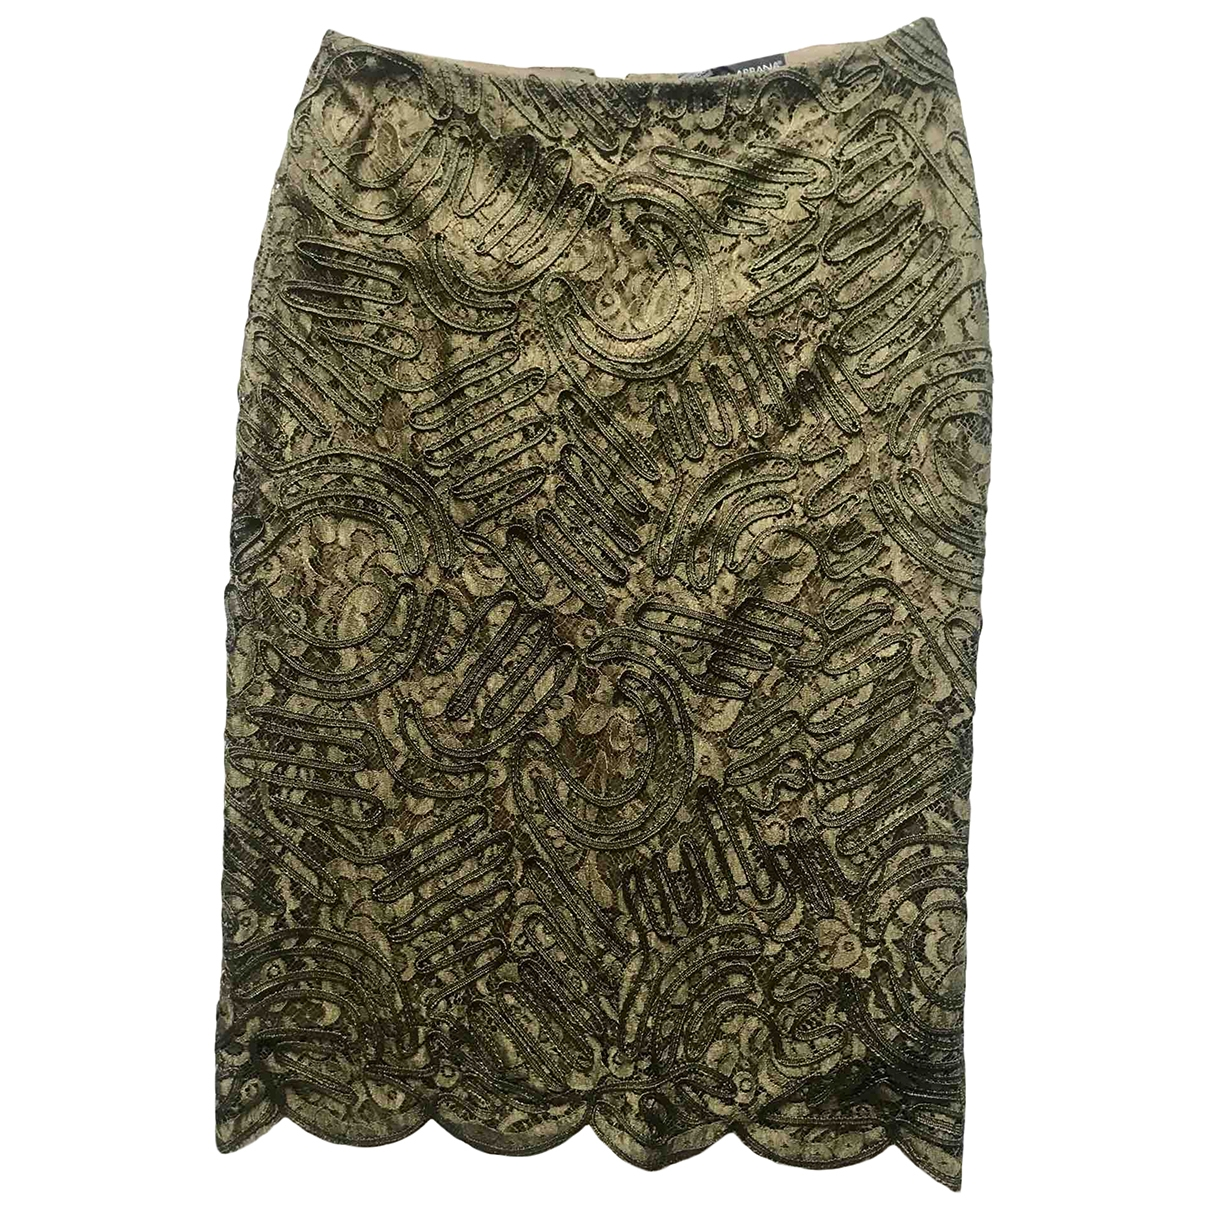 Dolce & Gabbana \N Khaki skirt for Women 42 IT